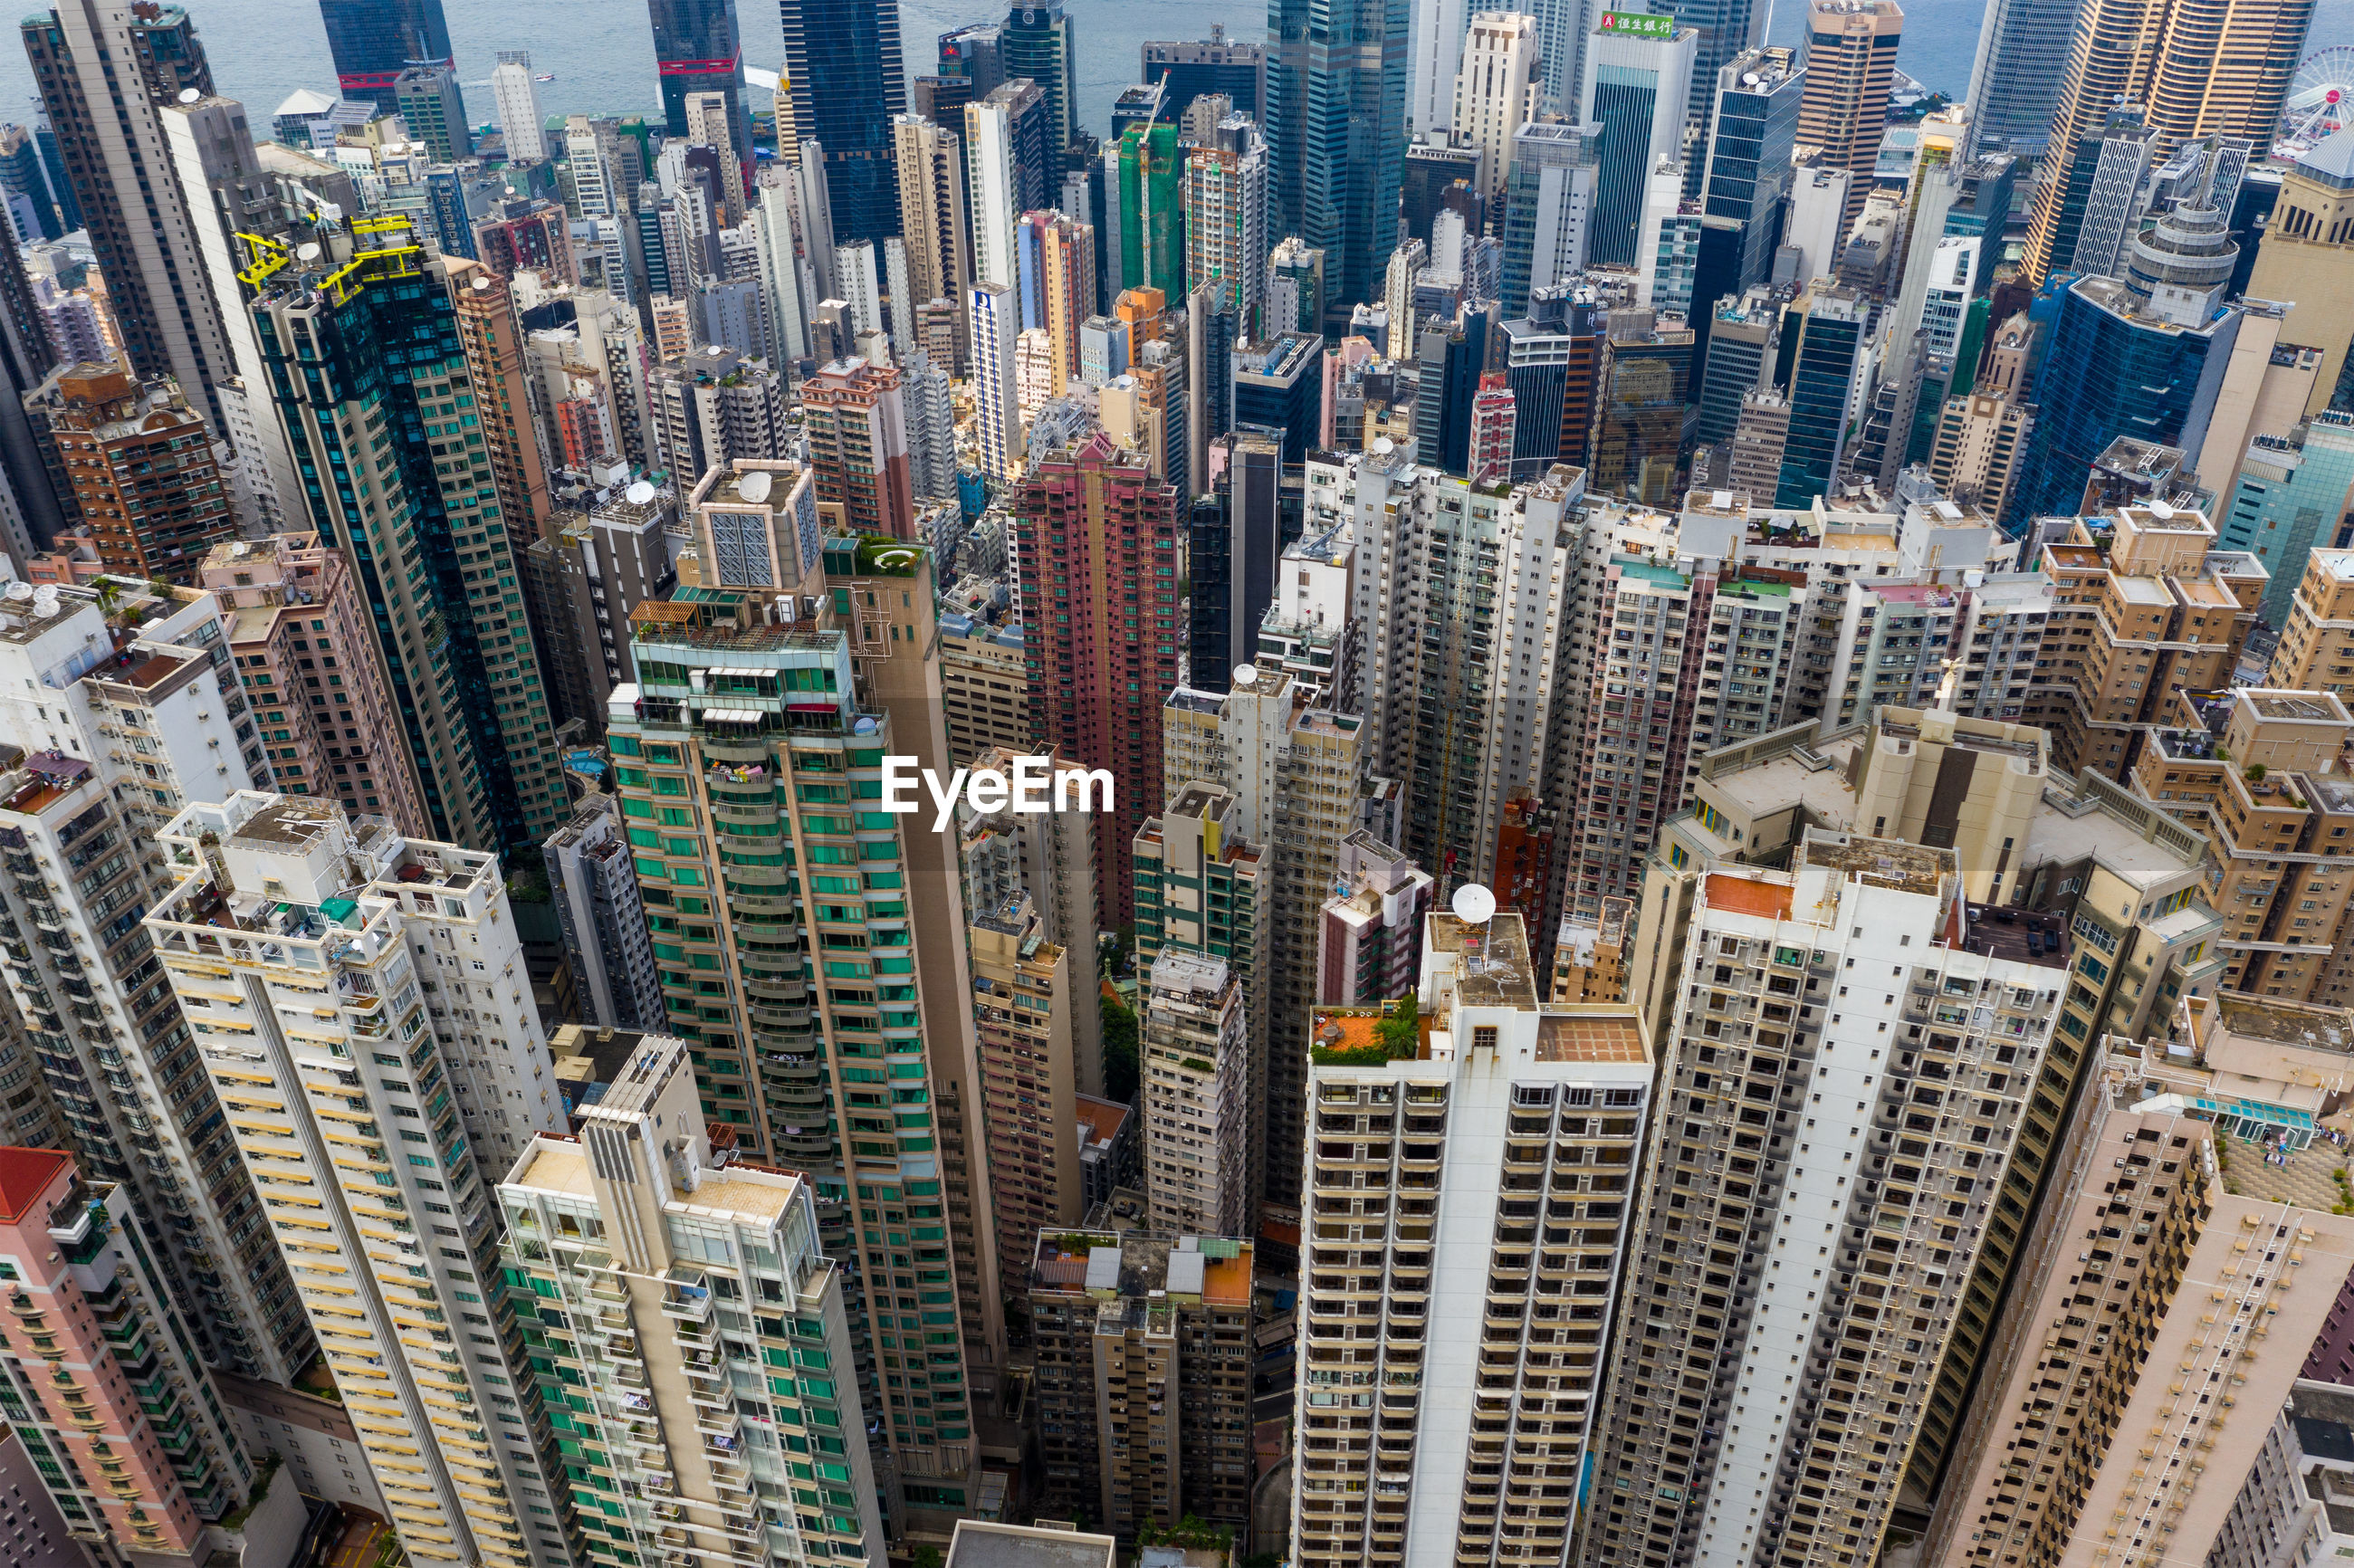 HIGH ANGLE VIEW OF MODERN BUILDINGS IN CITY AT SKYSCRAPERS